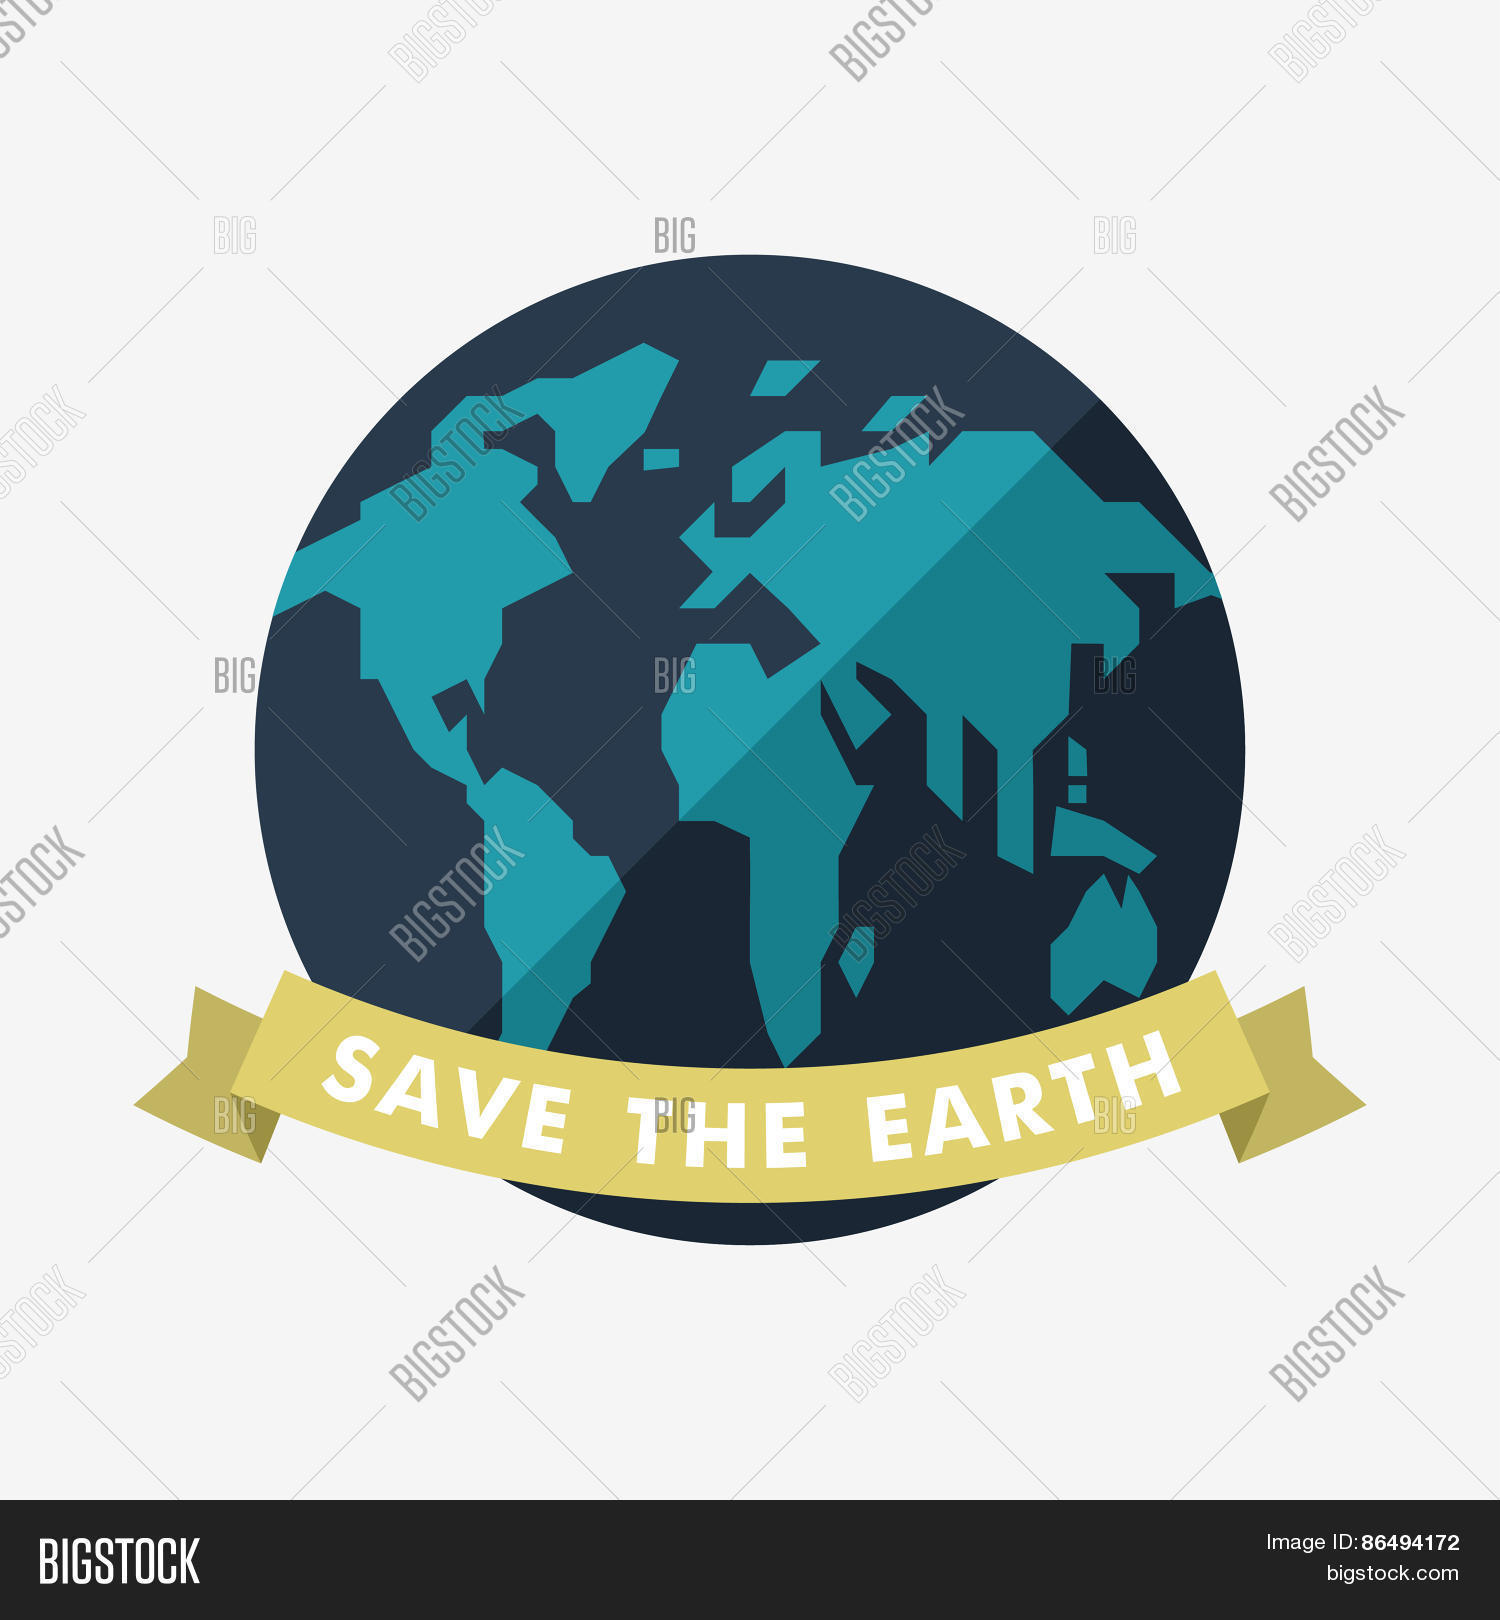 Poster design on save earth - Vintage Earth Day Celebrating Card Or Poster Design Save The Earth